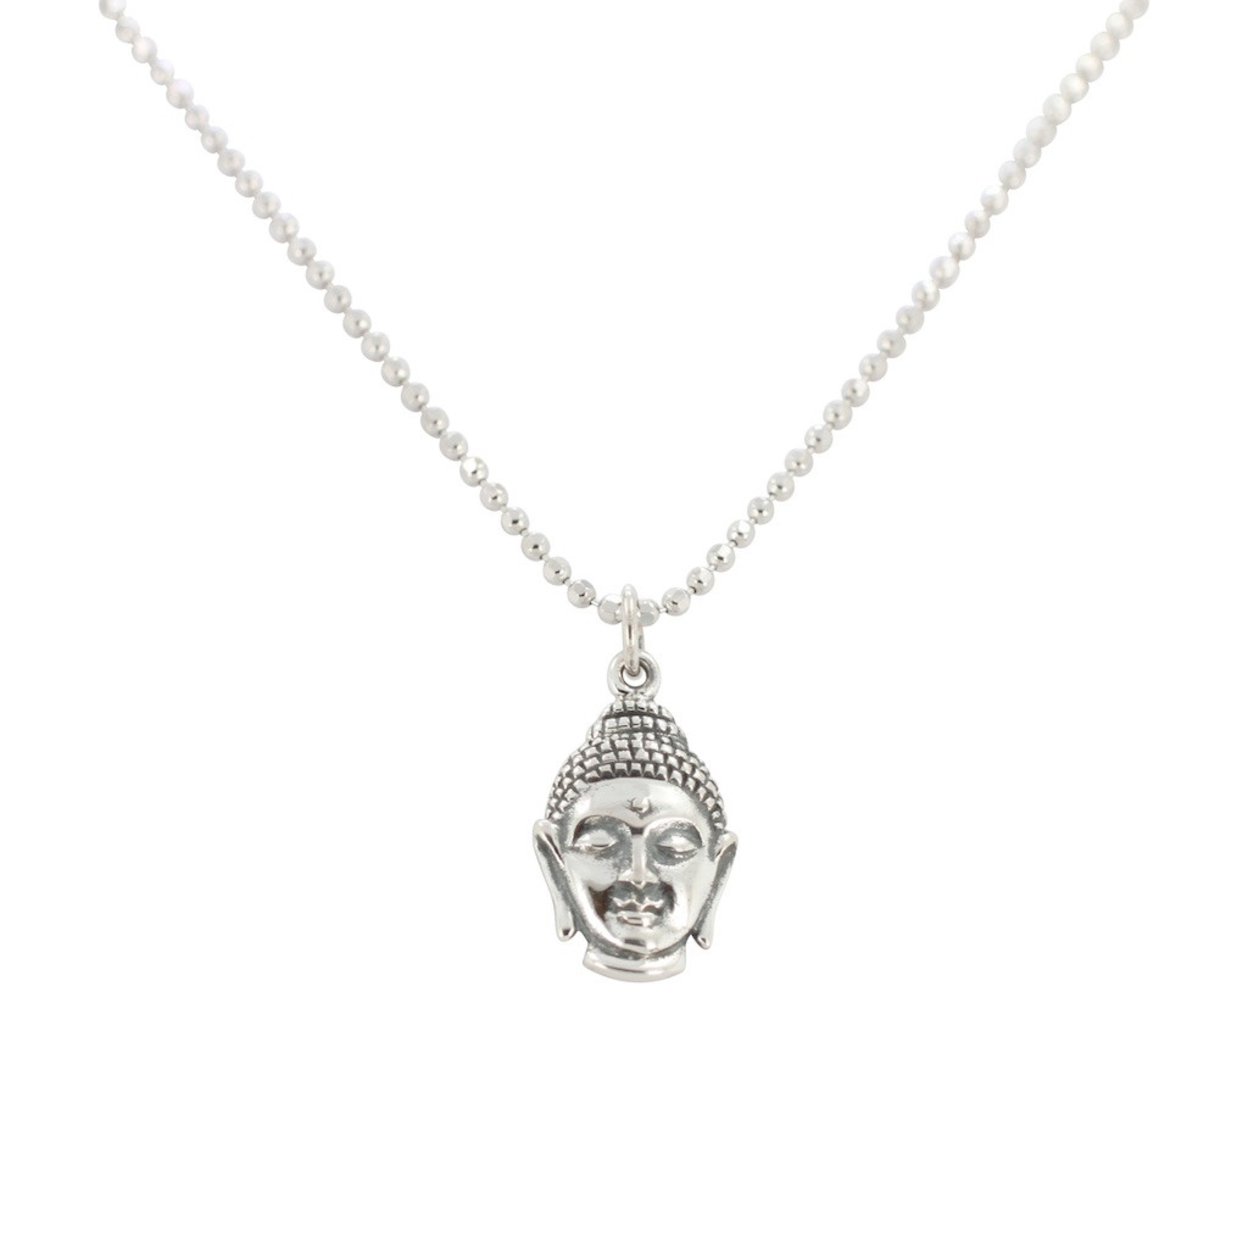 Buddha Necklace In Sterling Silver On 16 Or 18 Inch Chain, #6778